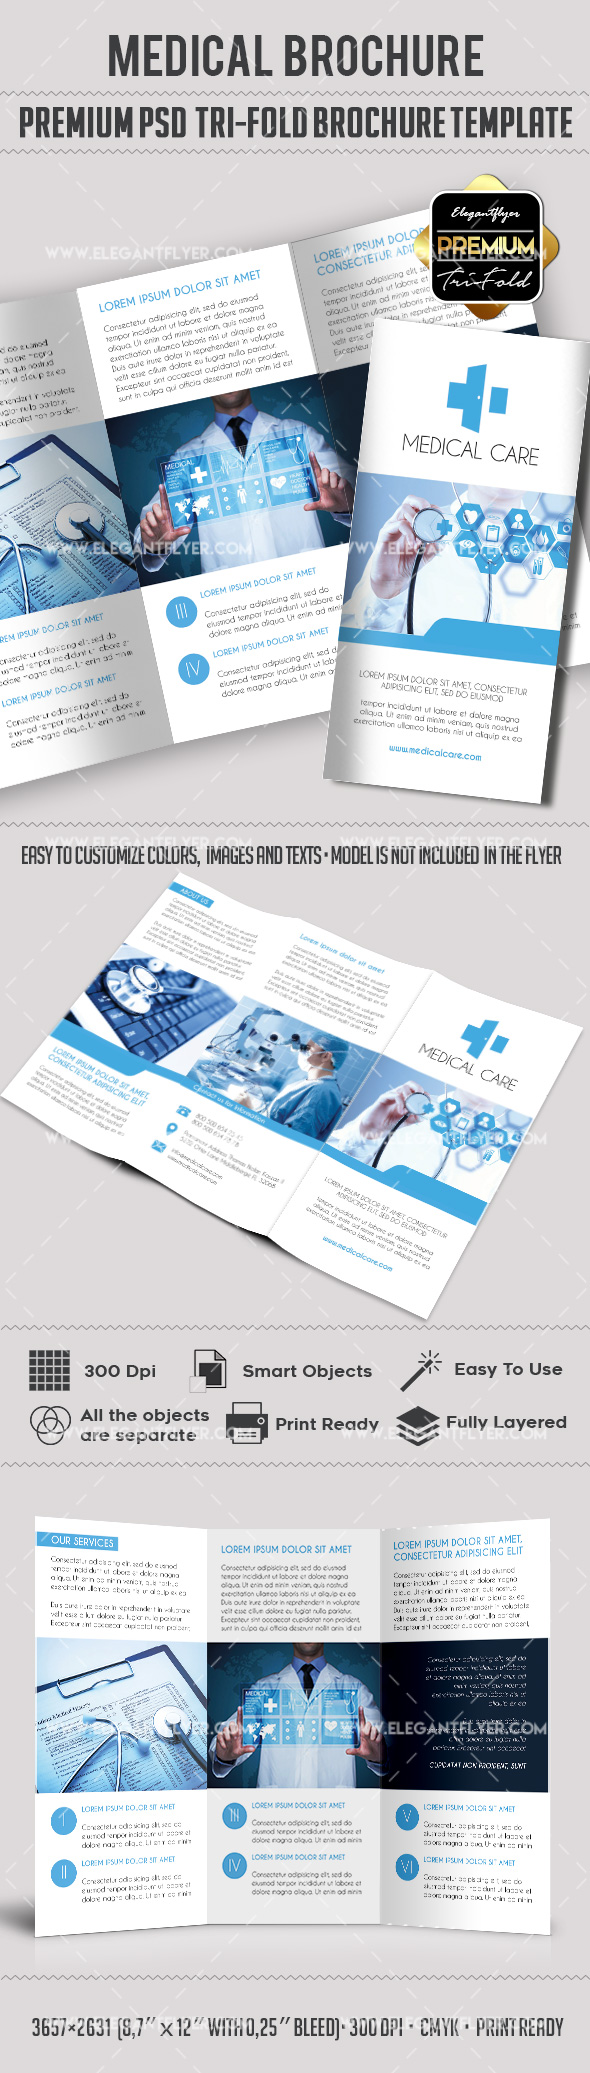 Medical – Premium Tri-Fold PSD Brochure Template